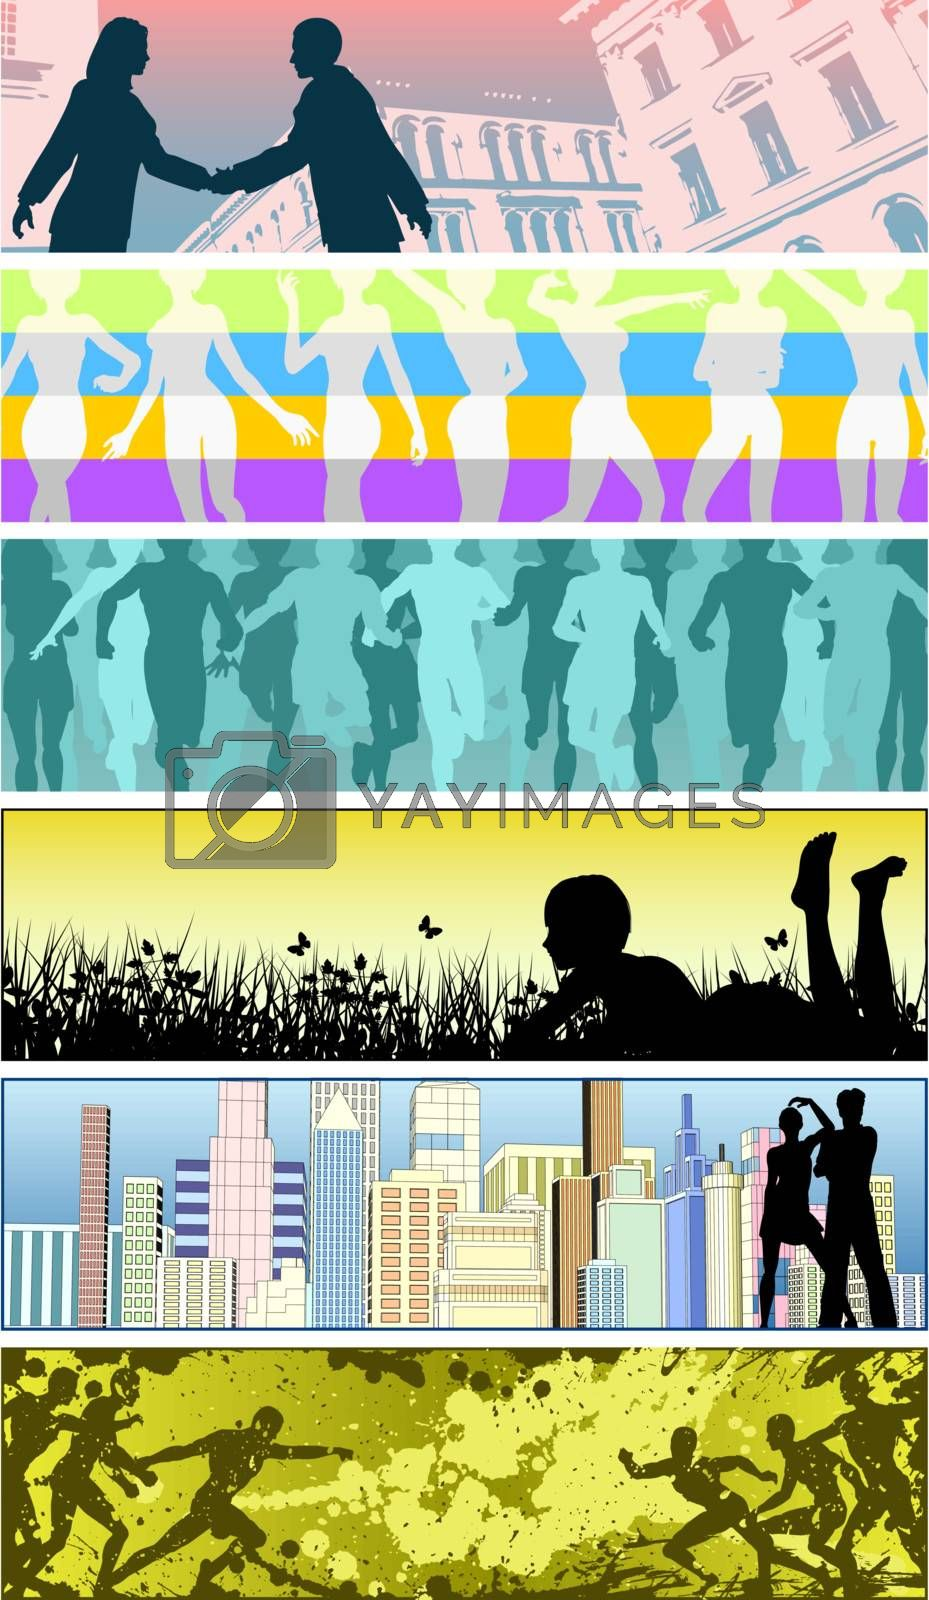 People banners by Tawng